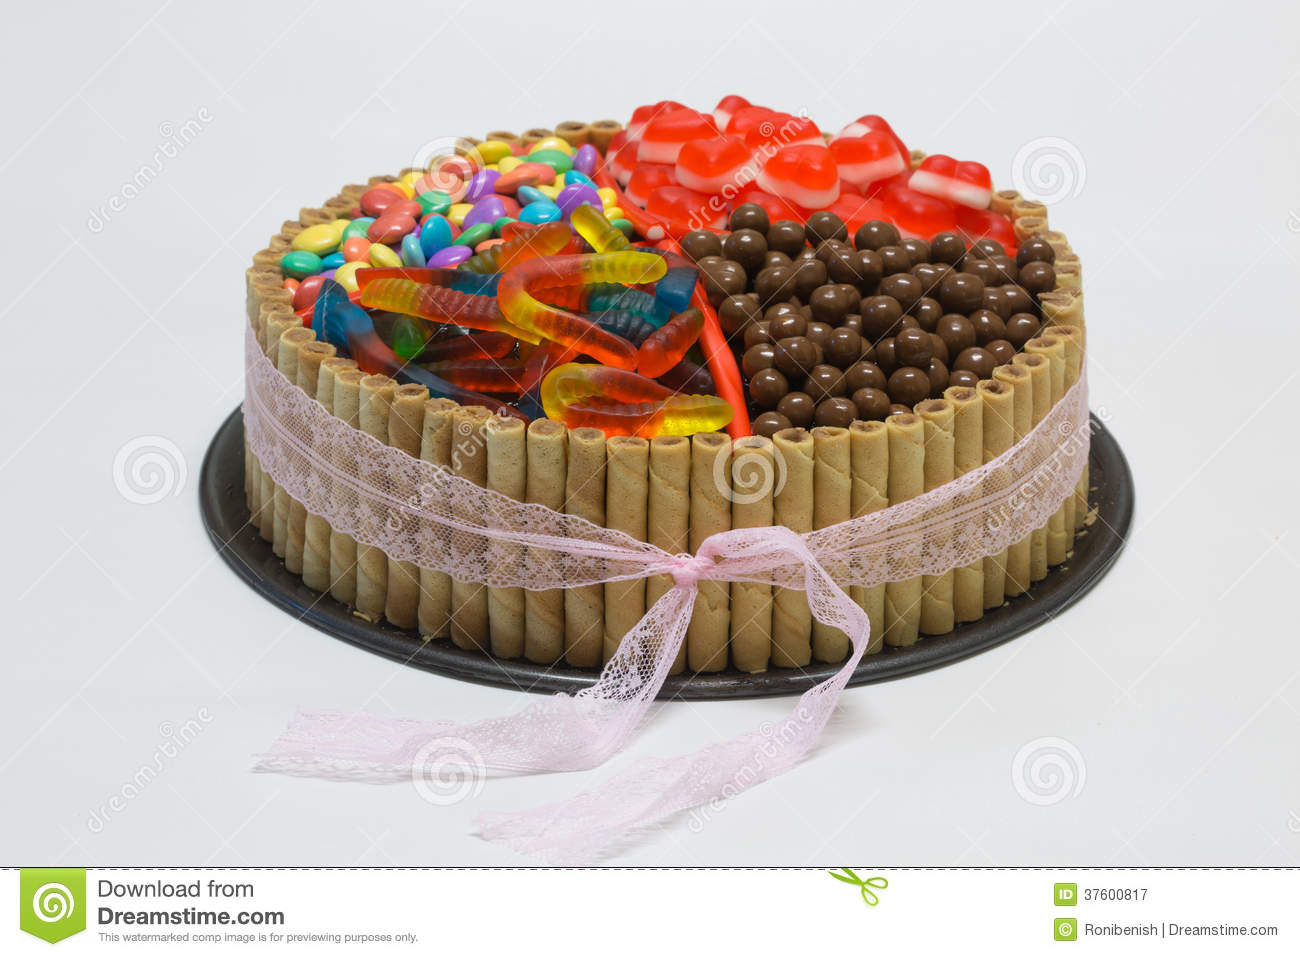 Chocolate Birthday Cake With Candy On Top Royalty Free